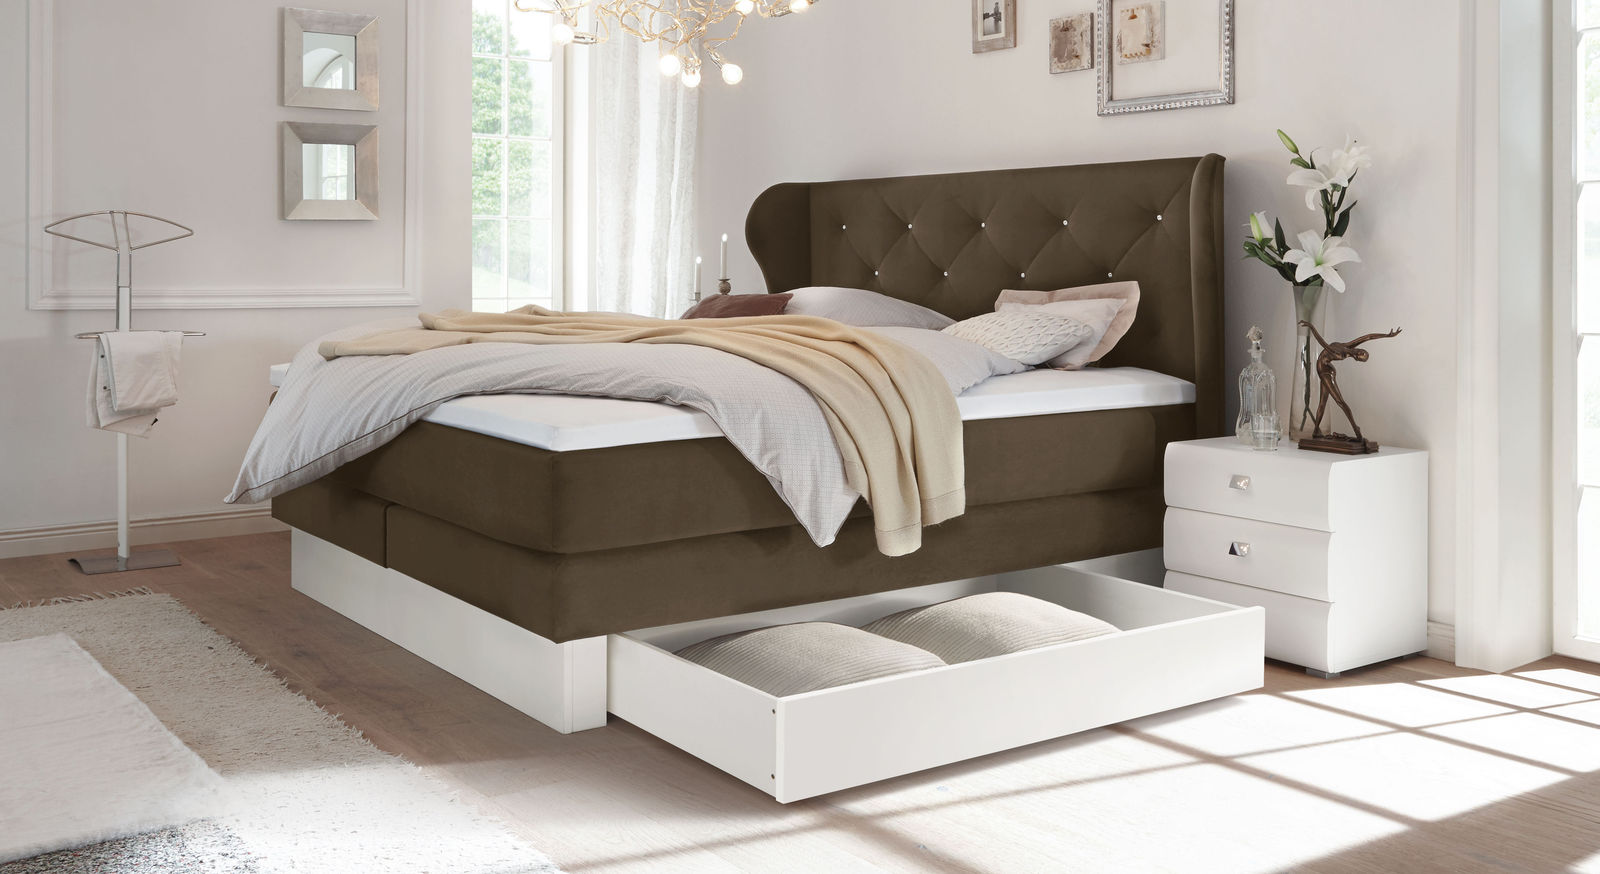 boxspringbett holz mit schubladen. Black Bedroom Furniture Sets. Home Design Ideas